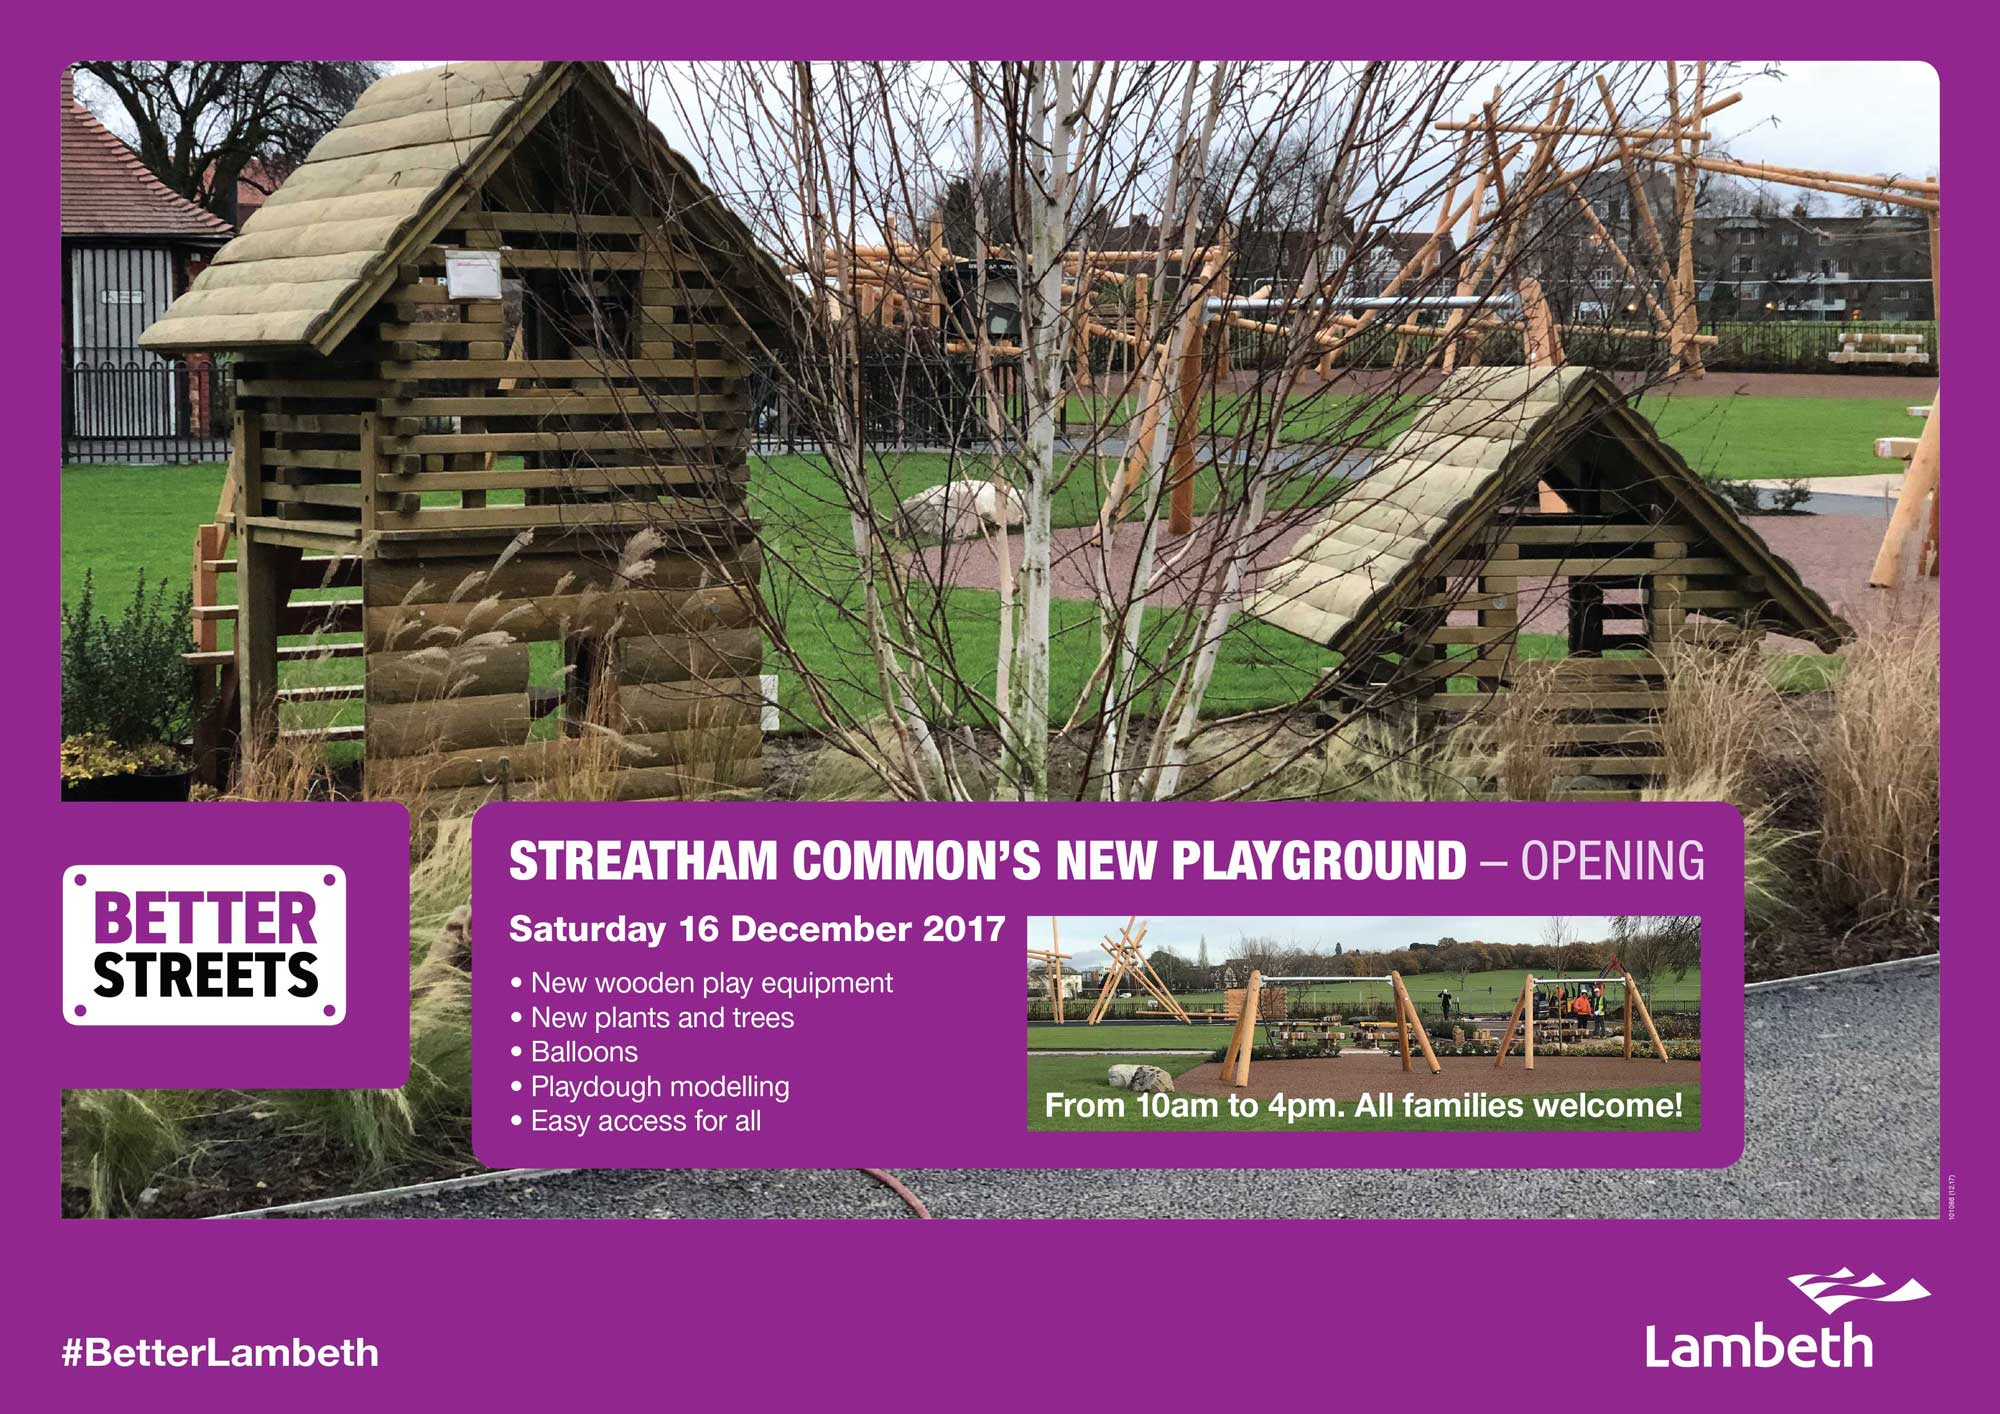 details of playground launch 16/12/17